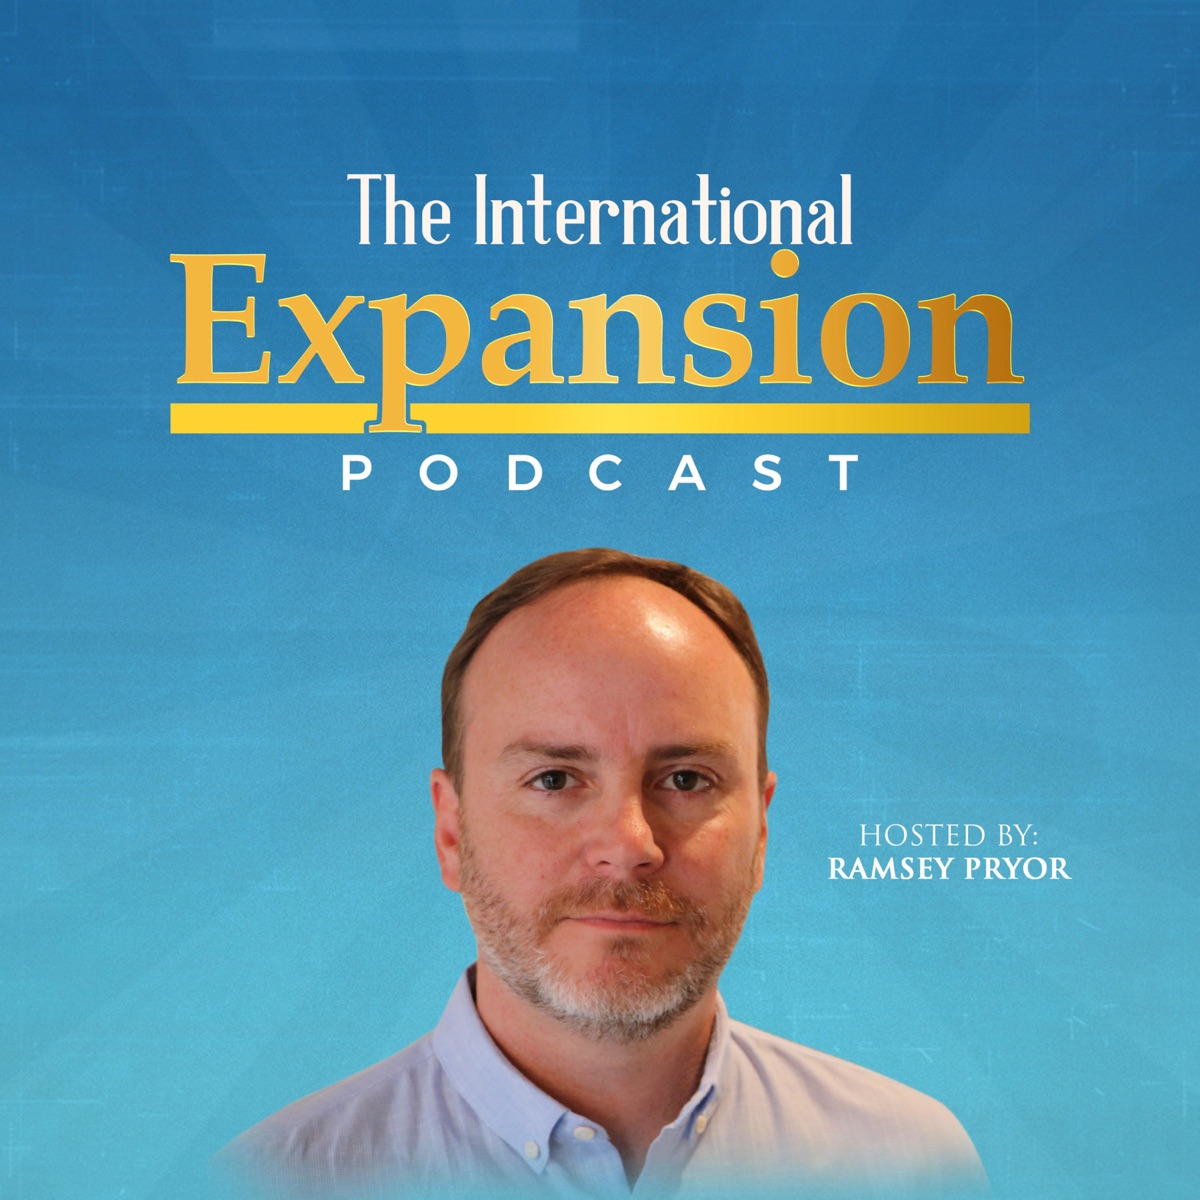 The International Expansion Podcast with Ramsey Pryor